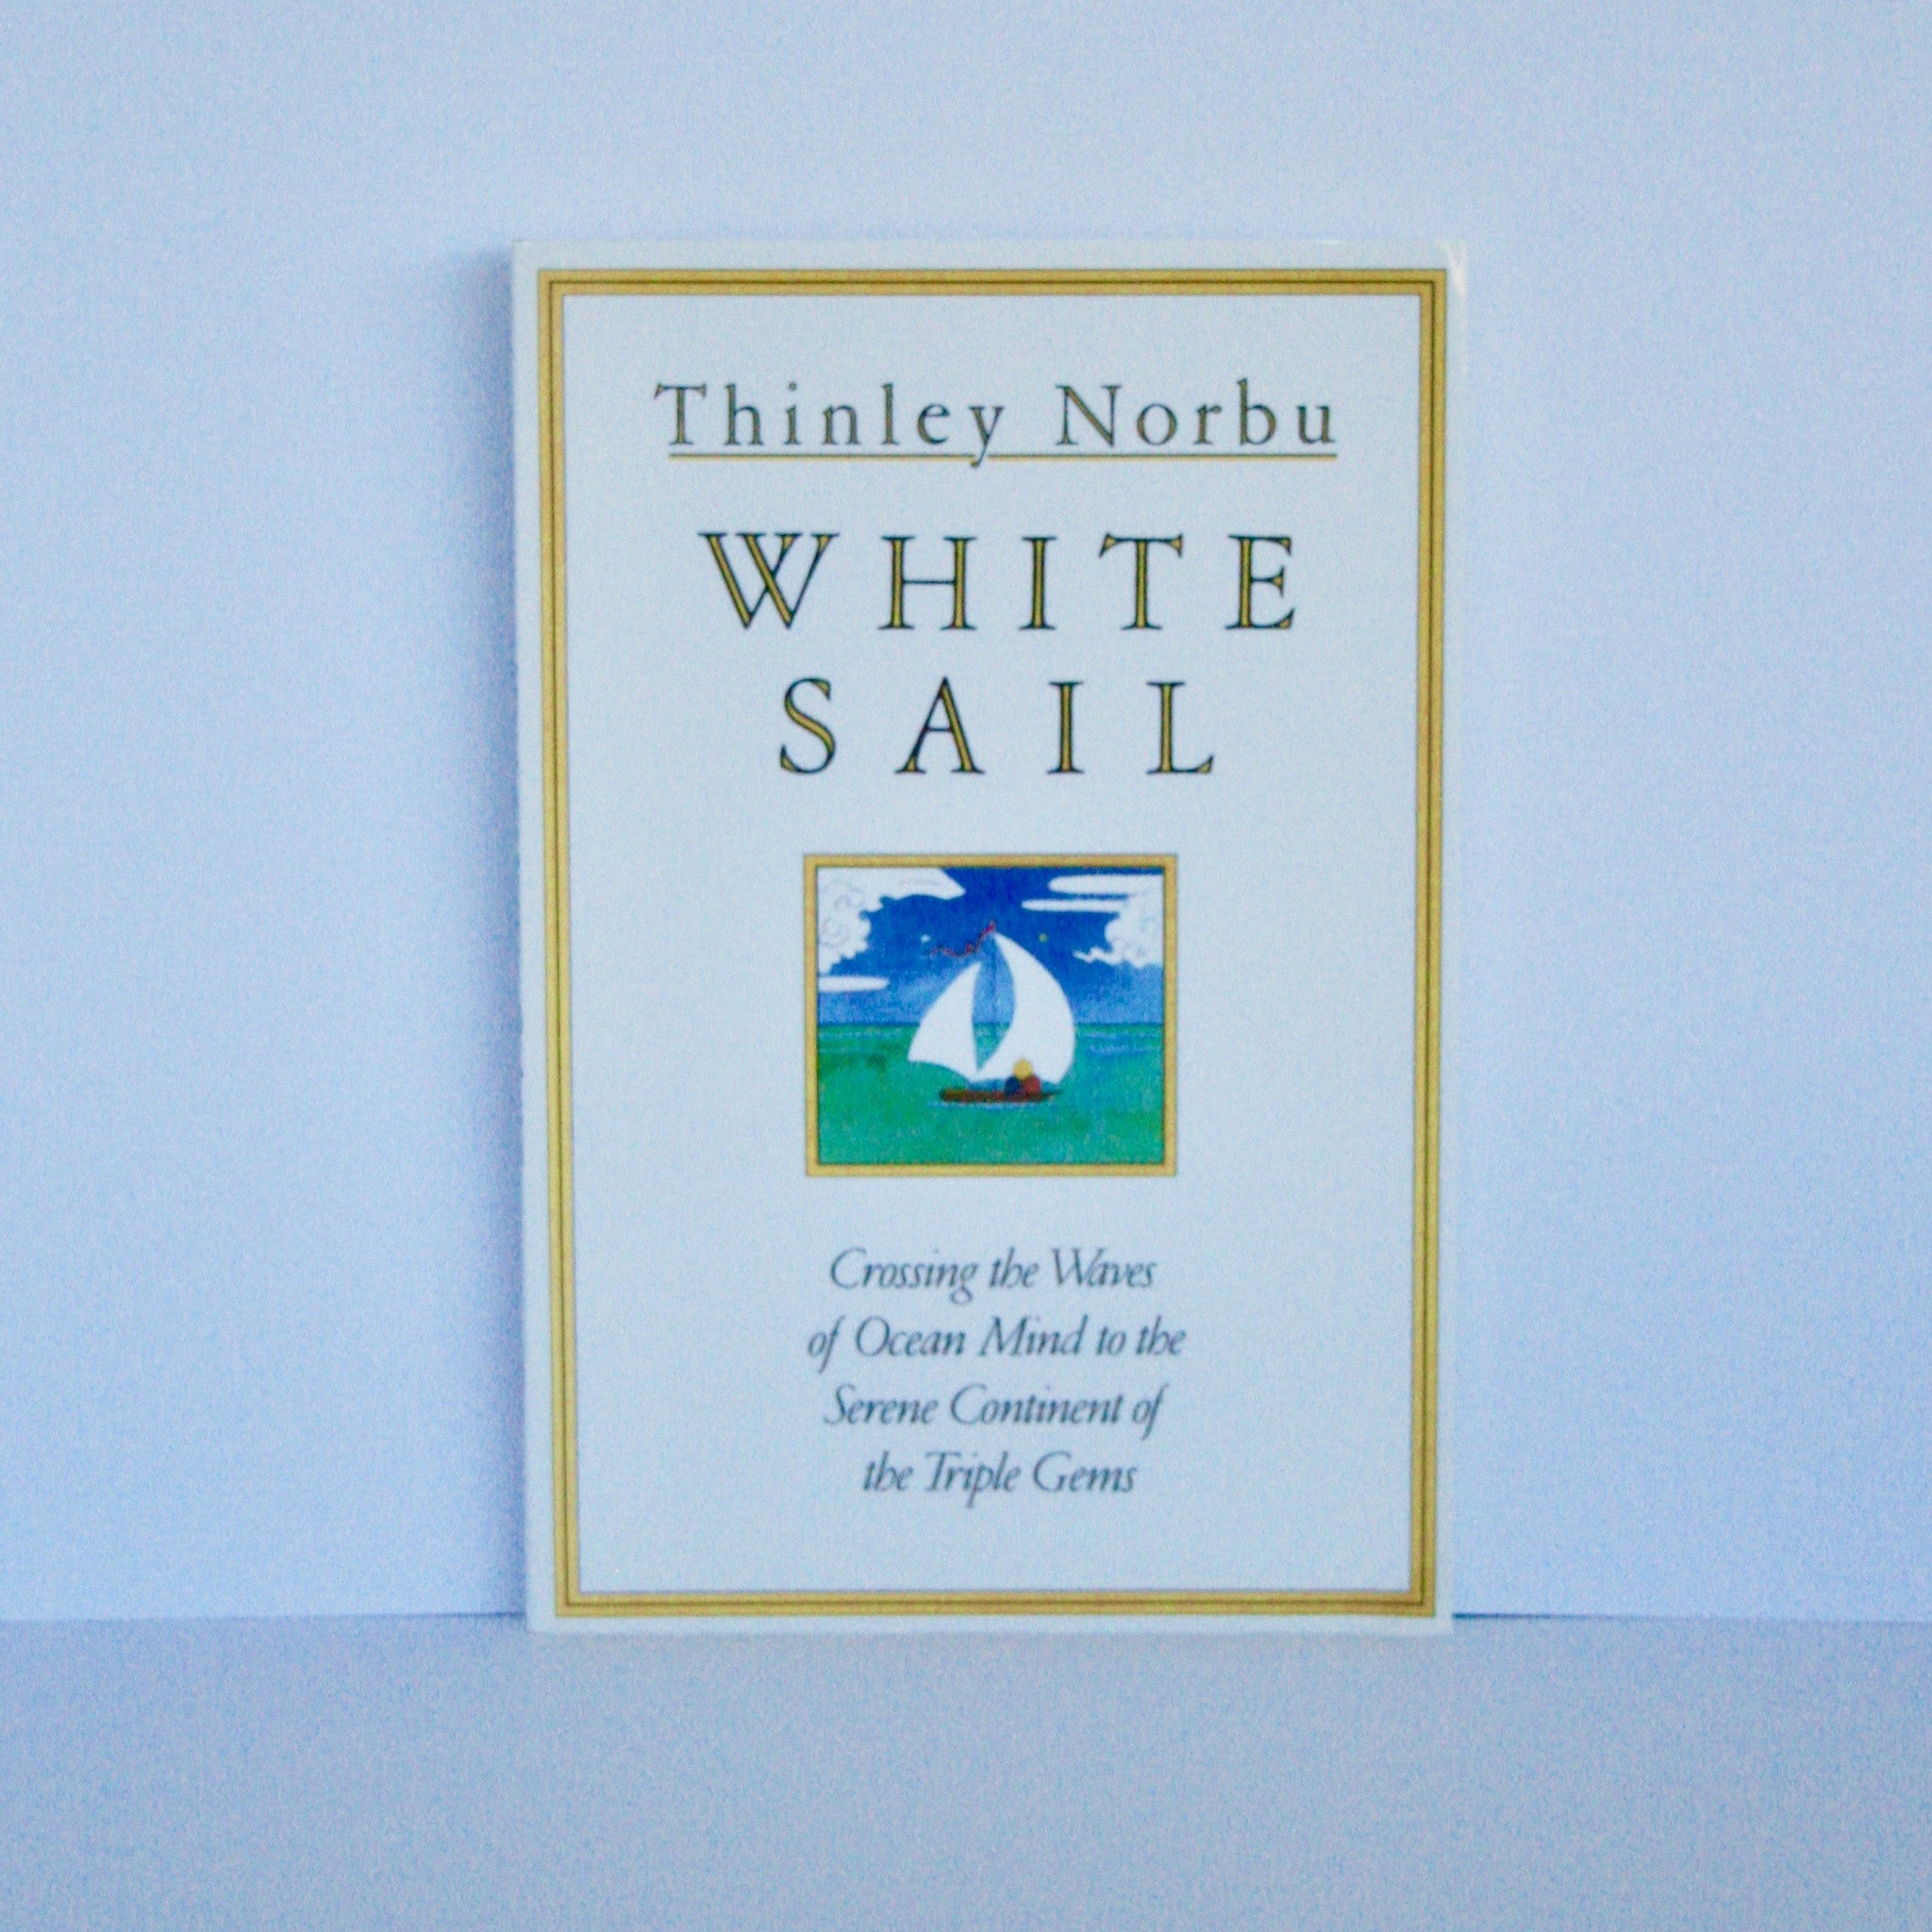 White Sail - Crossing the Waves of Ocean Mind to the Serene Continent of the Triple Gems by Thinley Norbu